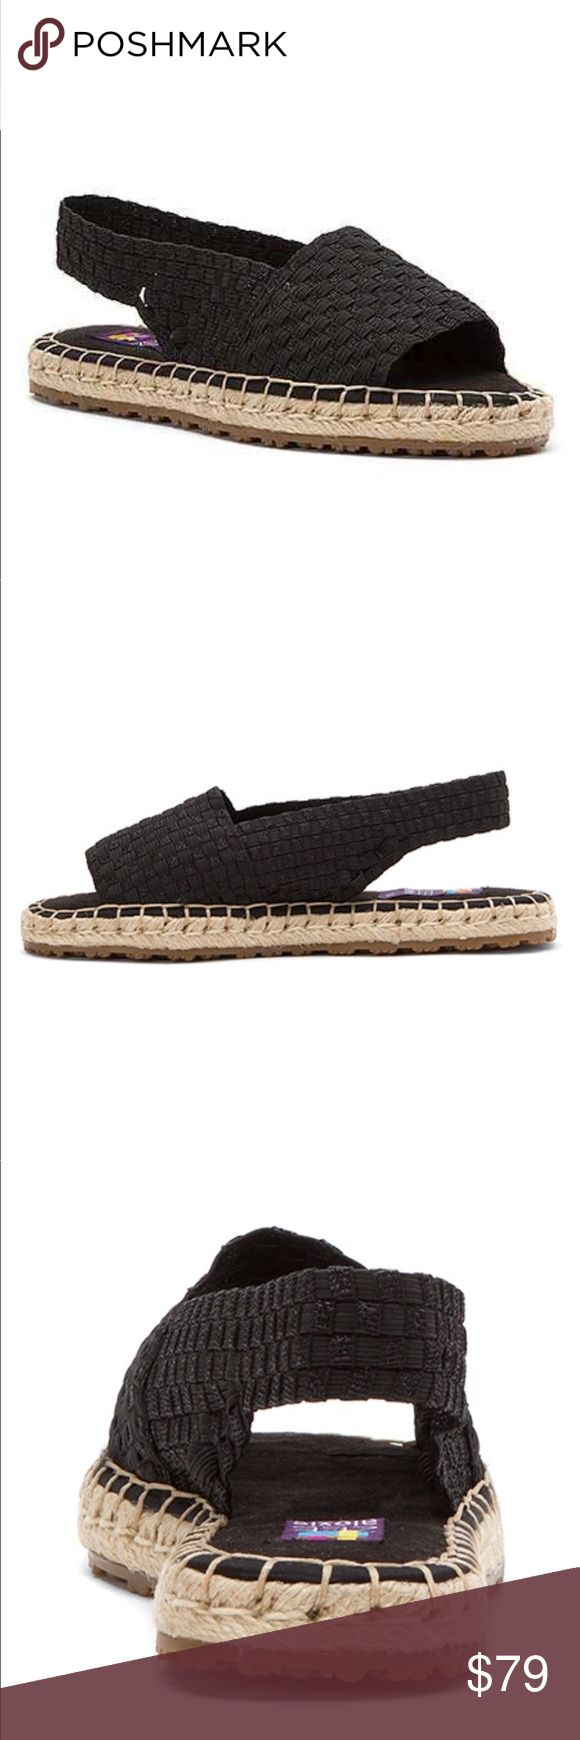 Black Woven Espadrille SlingBack Sandal A open-toe design and woven-elastic construction offer a breathable, flexible fit in this casual espadrille sandal. Woven elastic upper Textile lining Memory foam footbed Rubber sole Imported European Size 40 9.5-10 Urban Outfitters Shoes Espadrilles